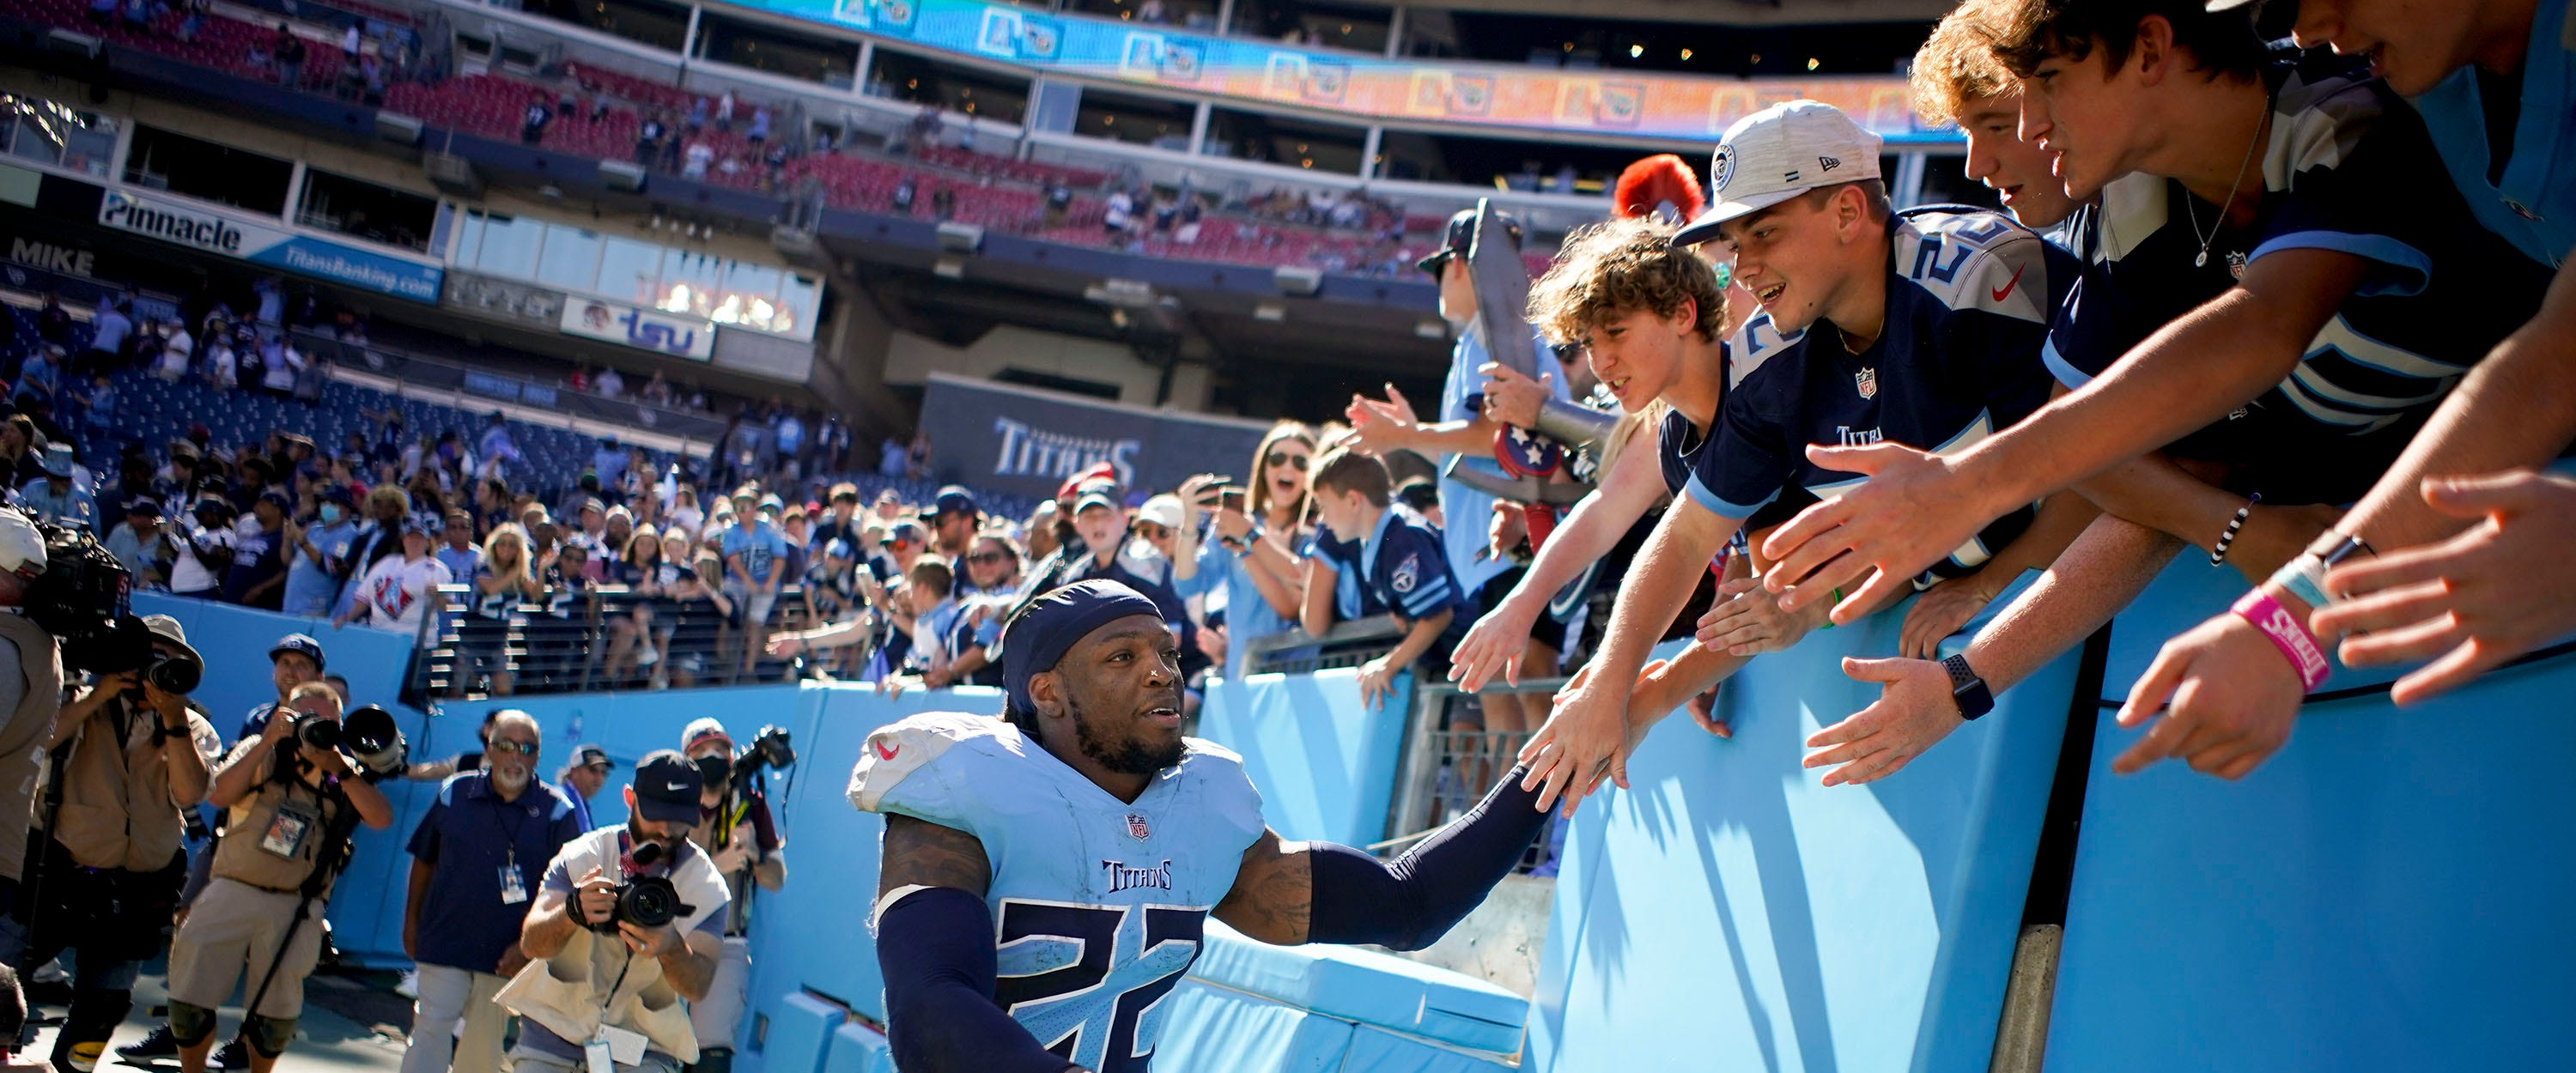 Titans: 3 takeaways from the turnover-riddled win over the Colts